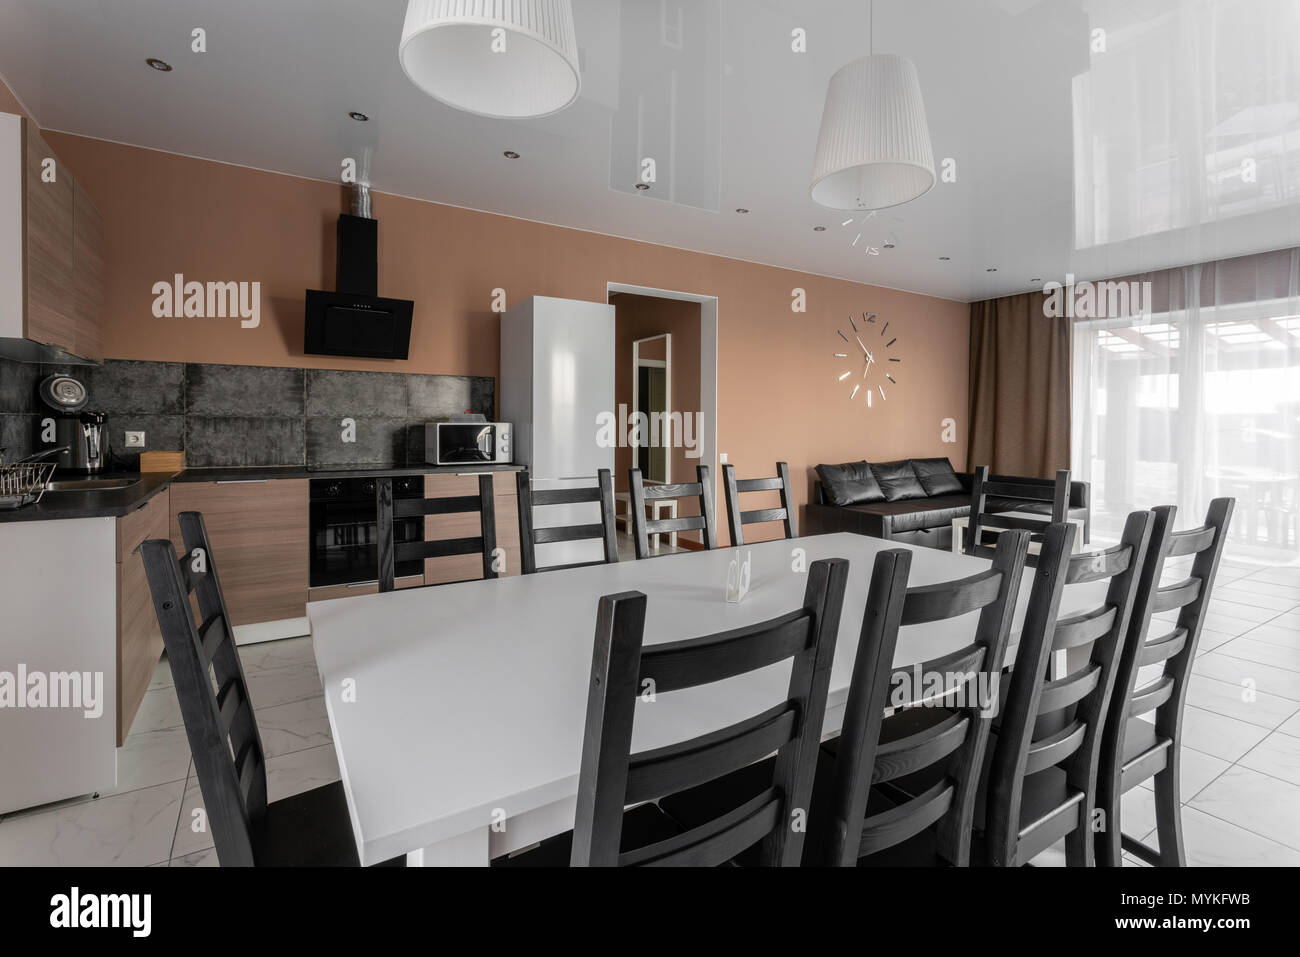 dining table for ten people modern minimalism style drawing room rh alamy com